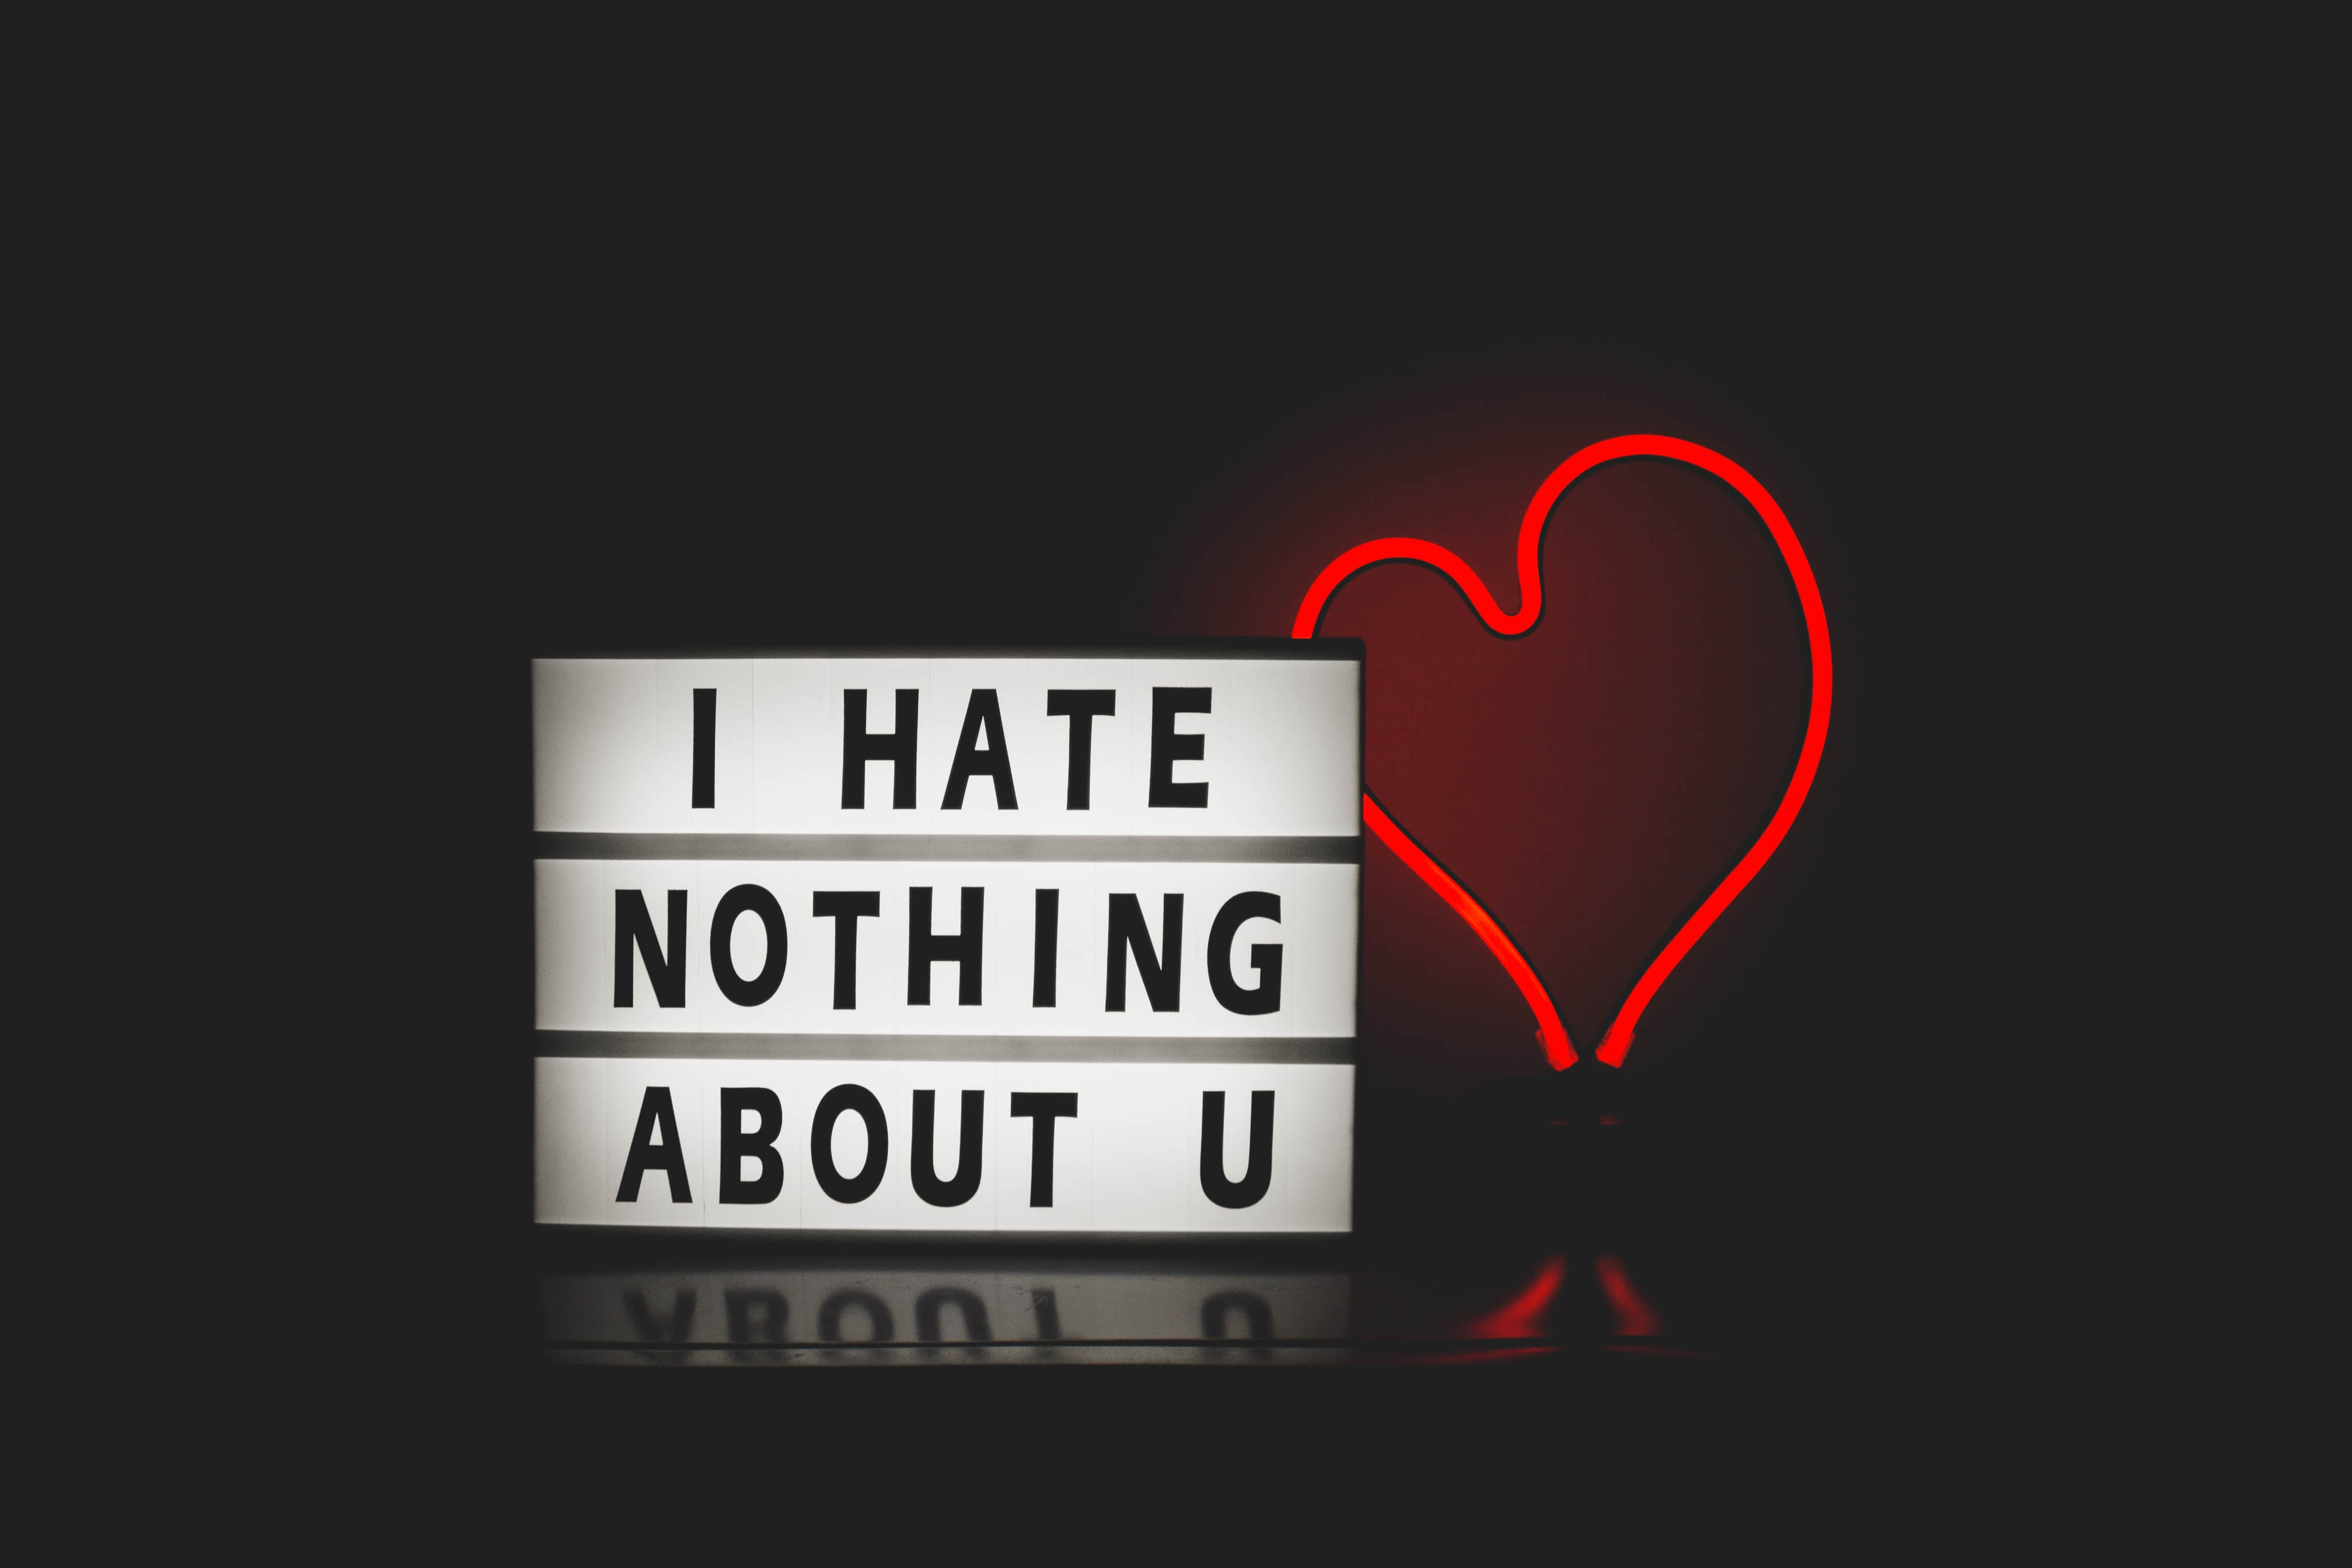 i hate nothing about u beside heart graphic